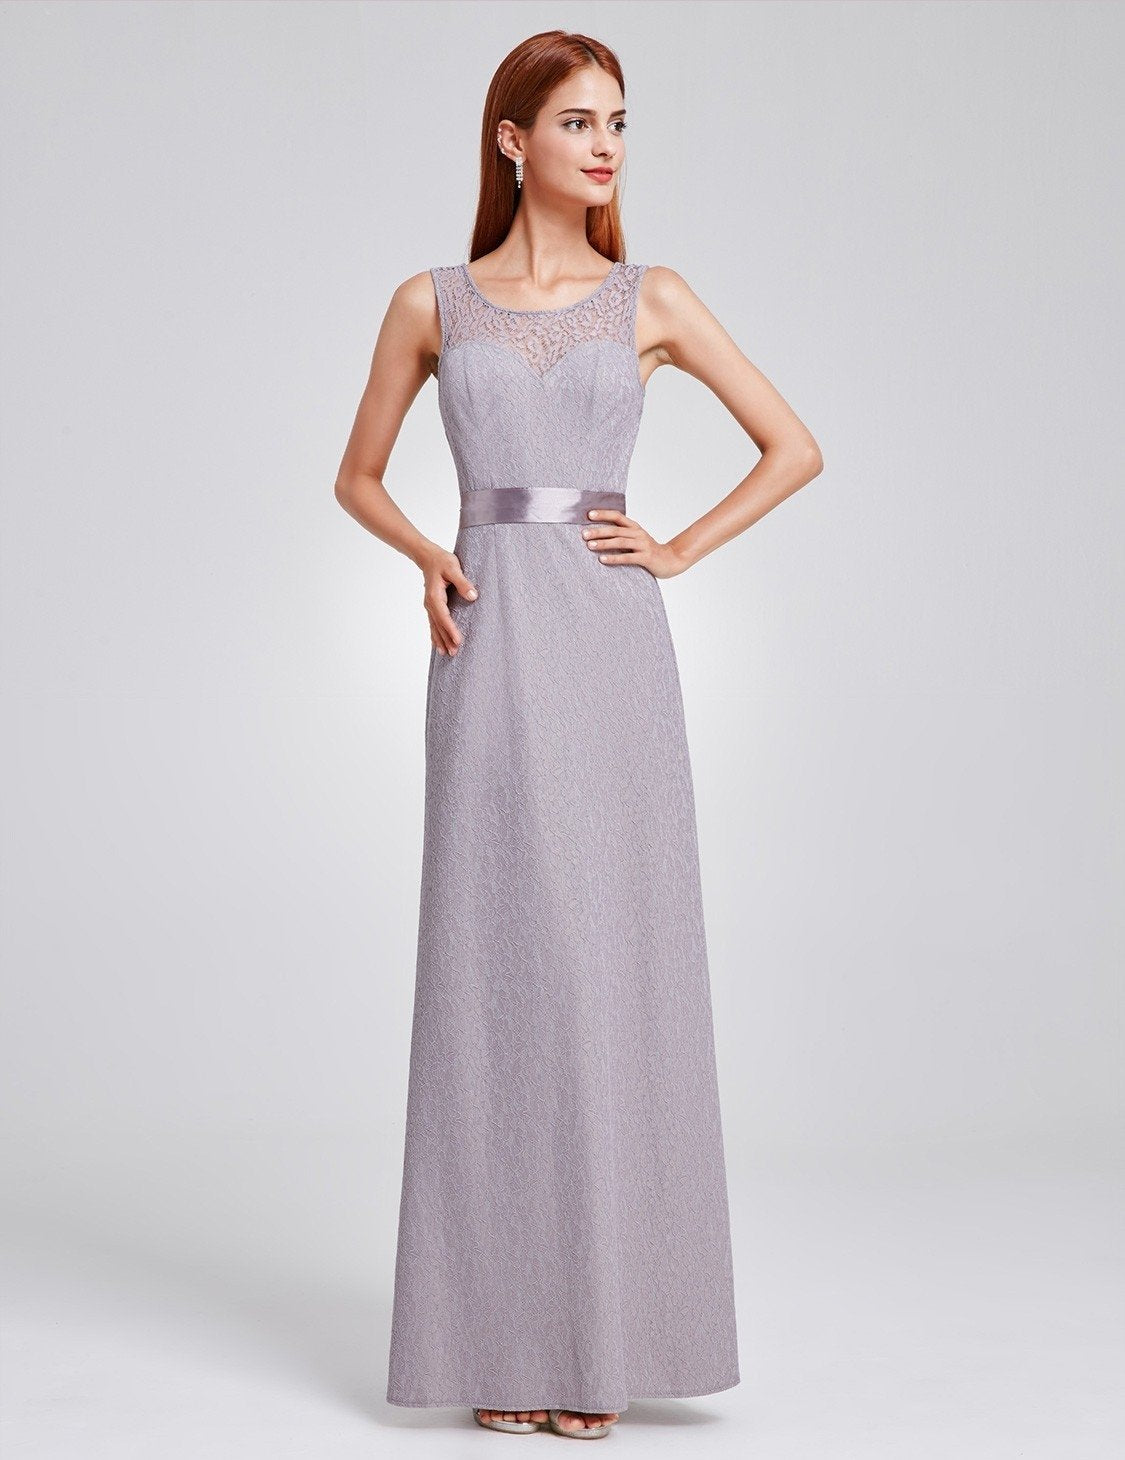 grey bridesmaid dress 2